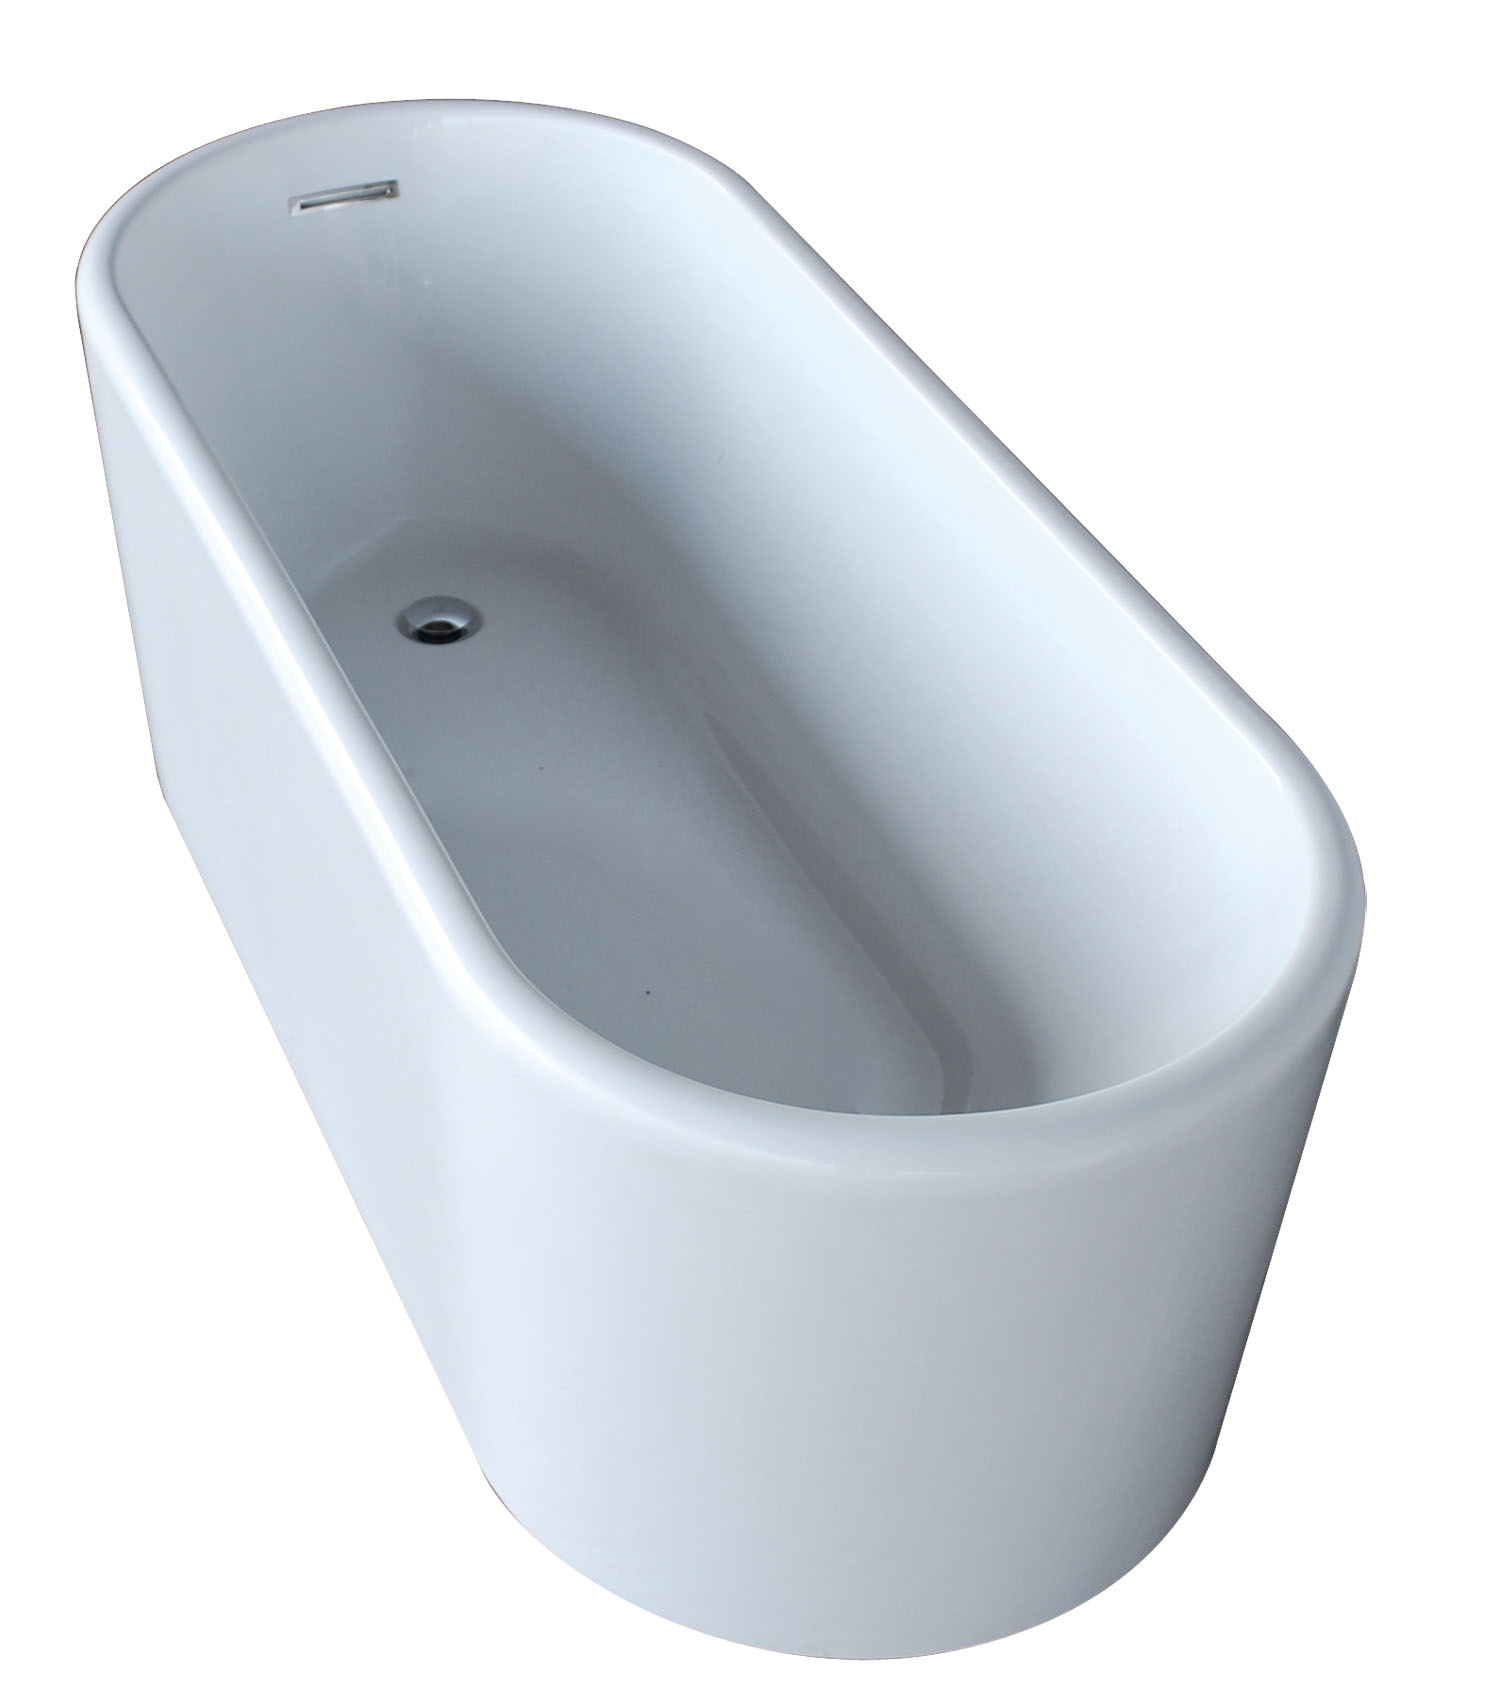 Vida Collection 28 in. by 67 in. Oval Acrylic Freestanding Bathtub